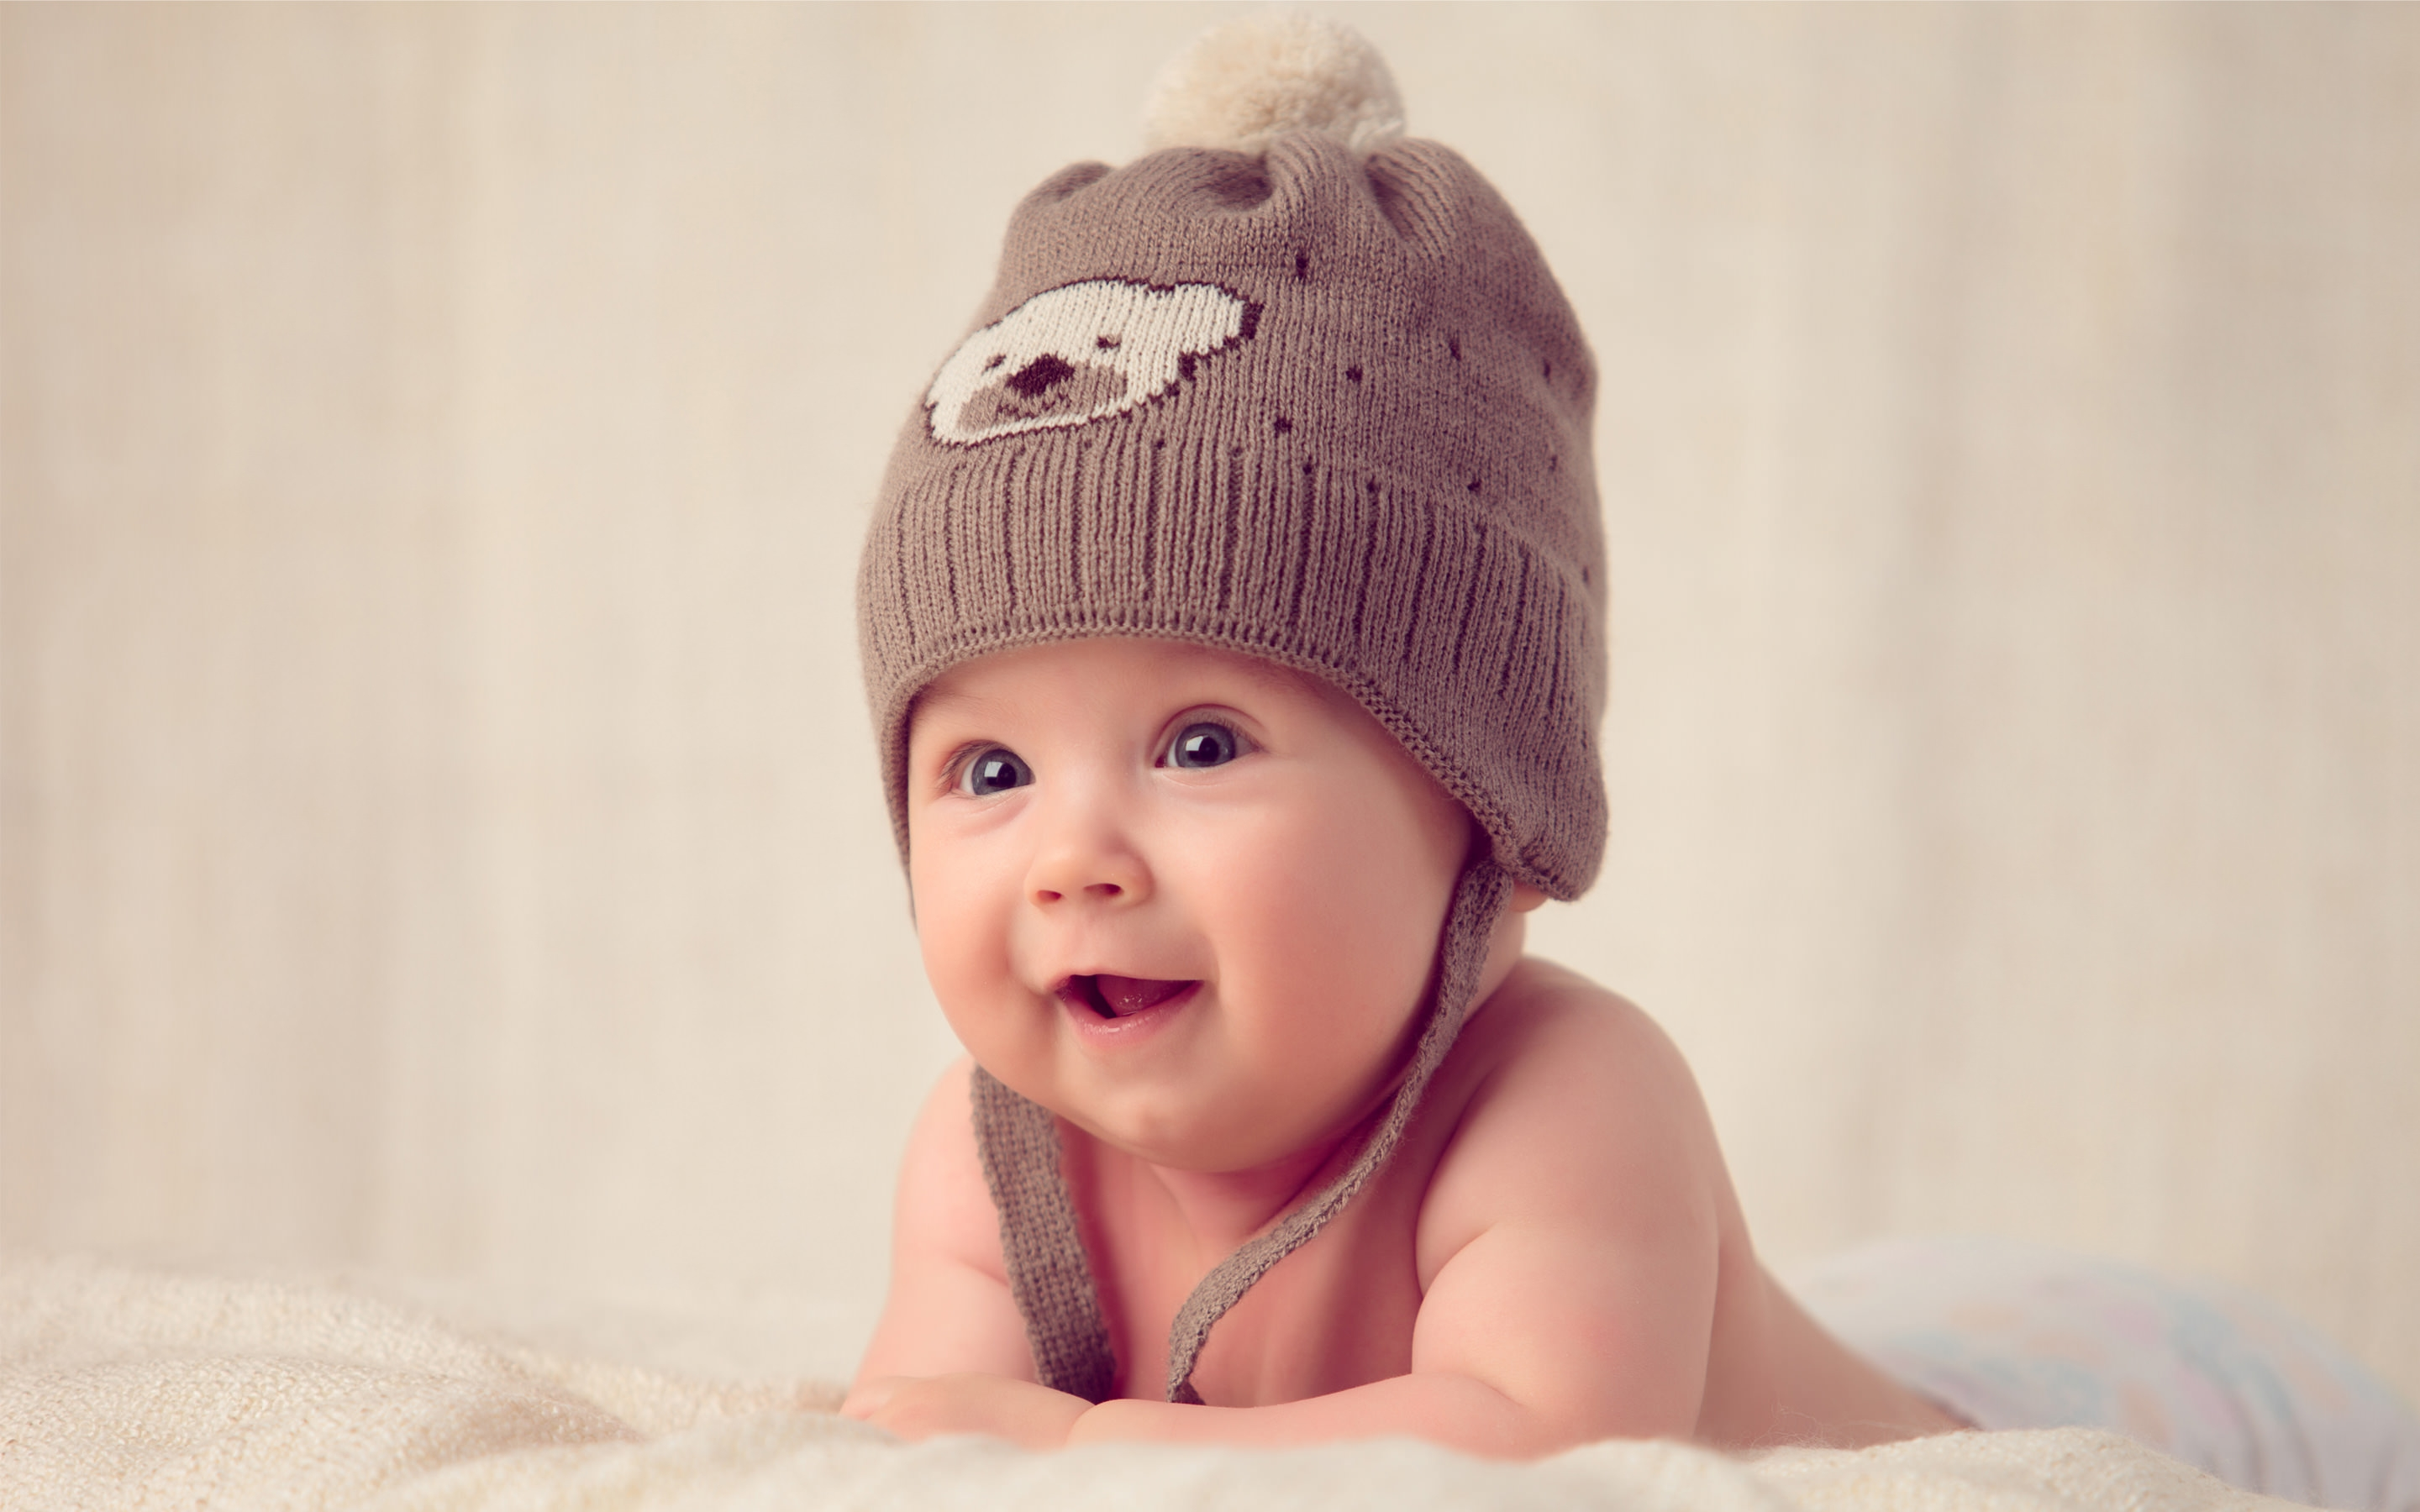 Cute Baby with Cap Wallpaper